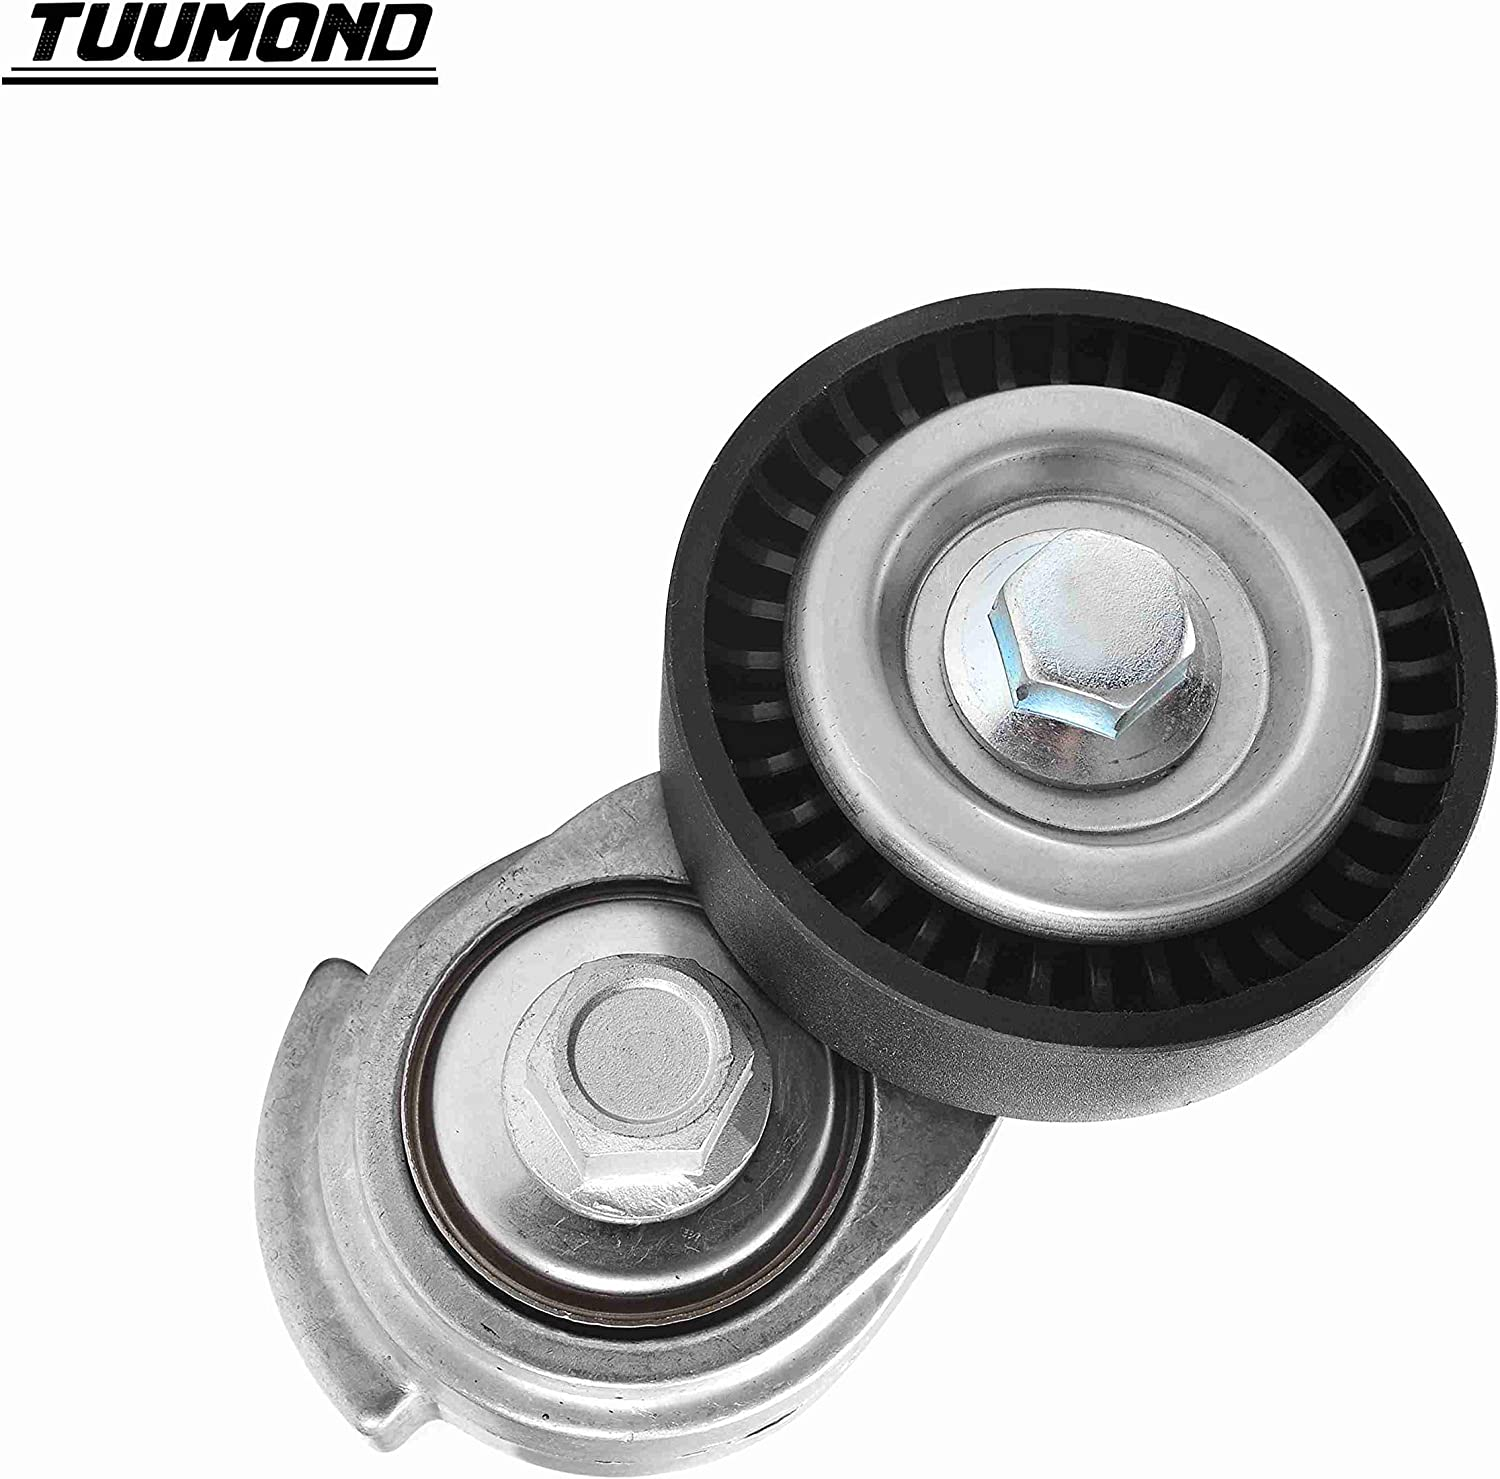 TUUMOND 38196 In a popularity Jacksonville Mall Automatic Belt Tensioner CAMARO for CHEVROLET Fits